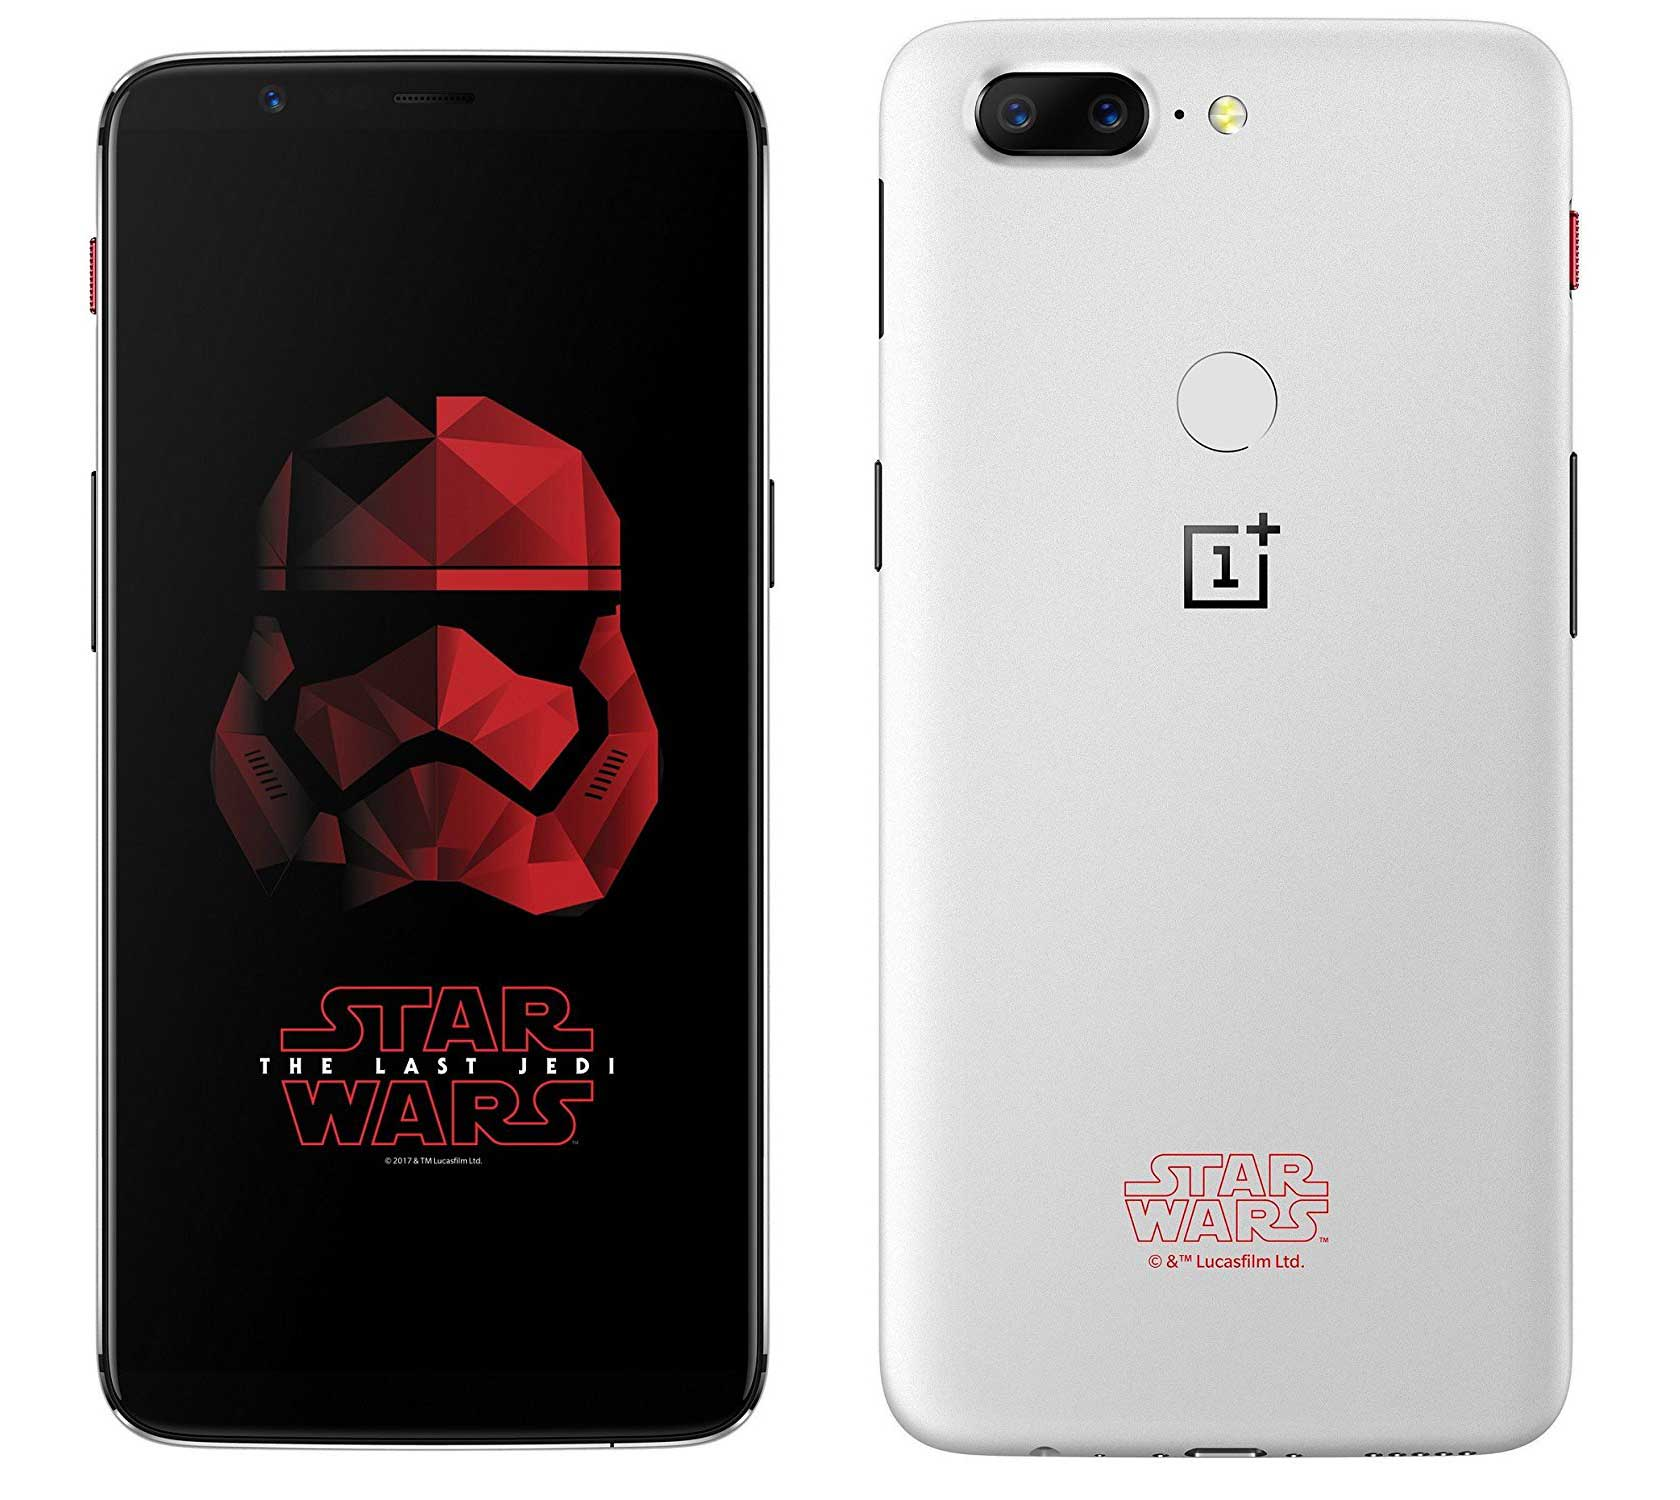 OnePlus 5T Star Wars Limited Edition Price in India